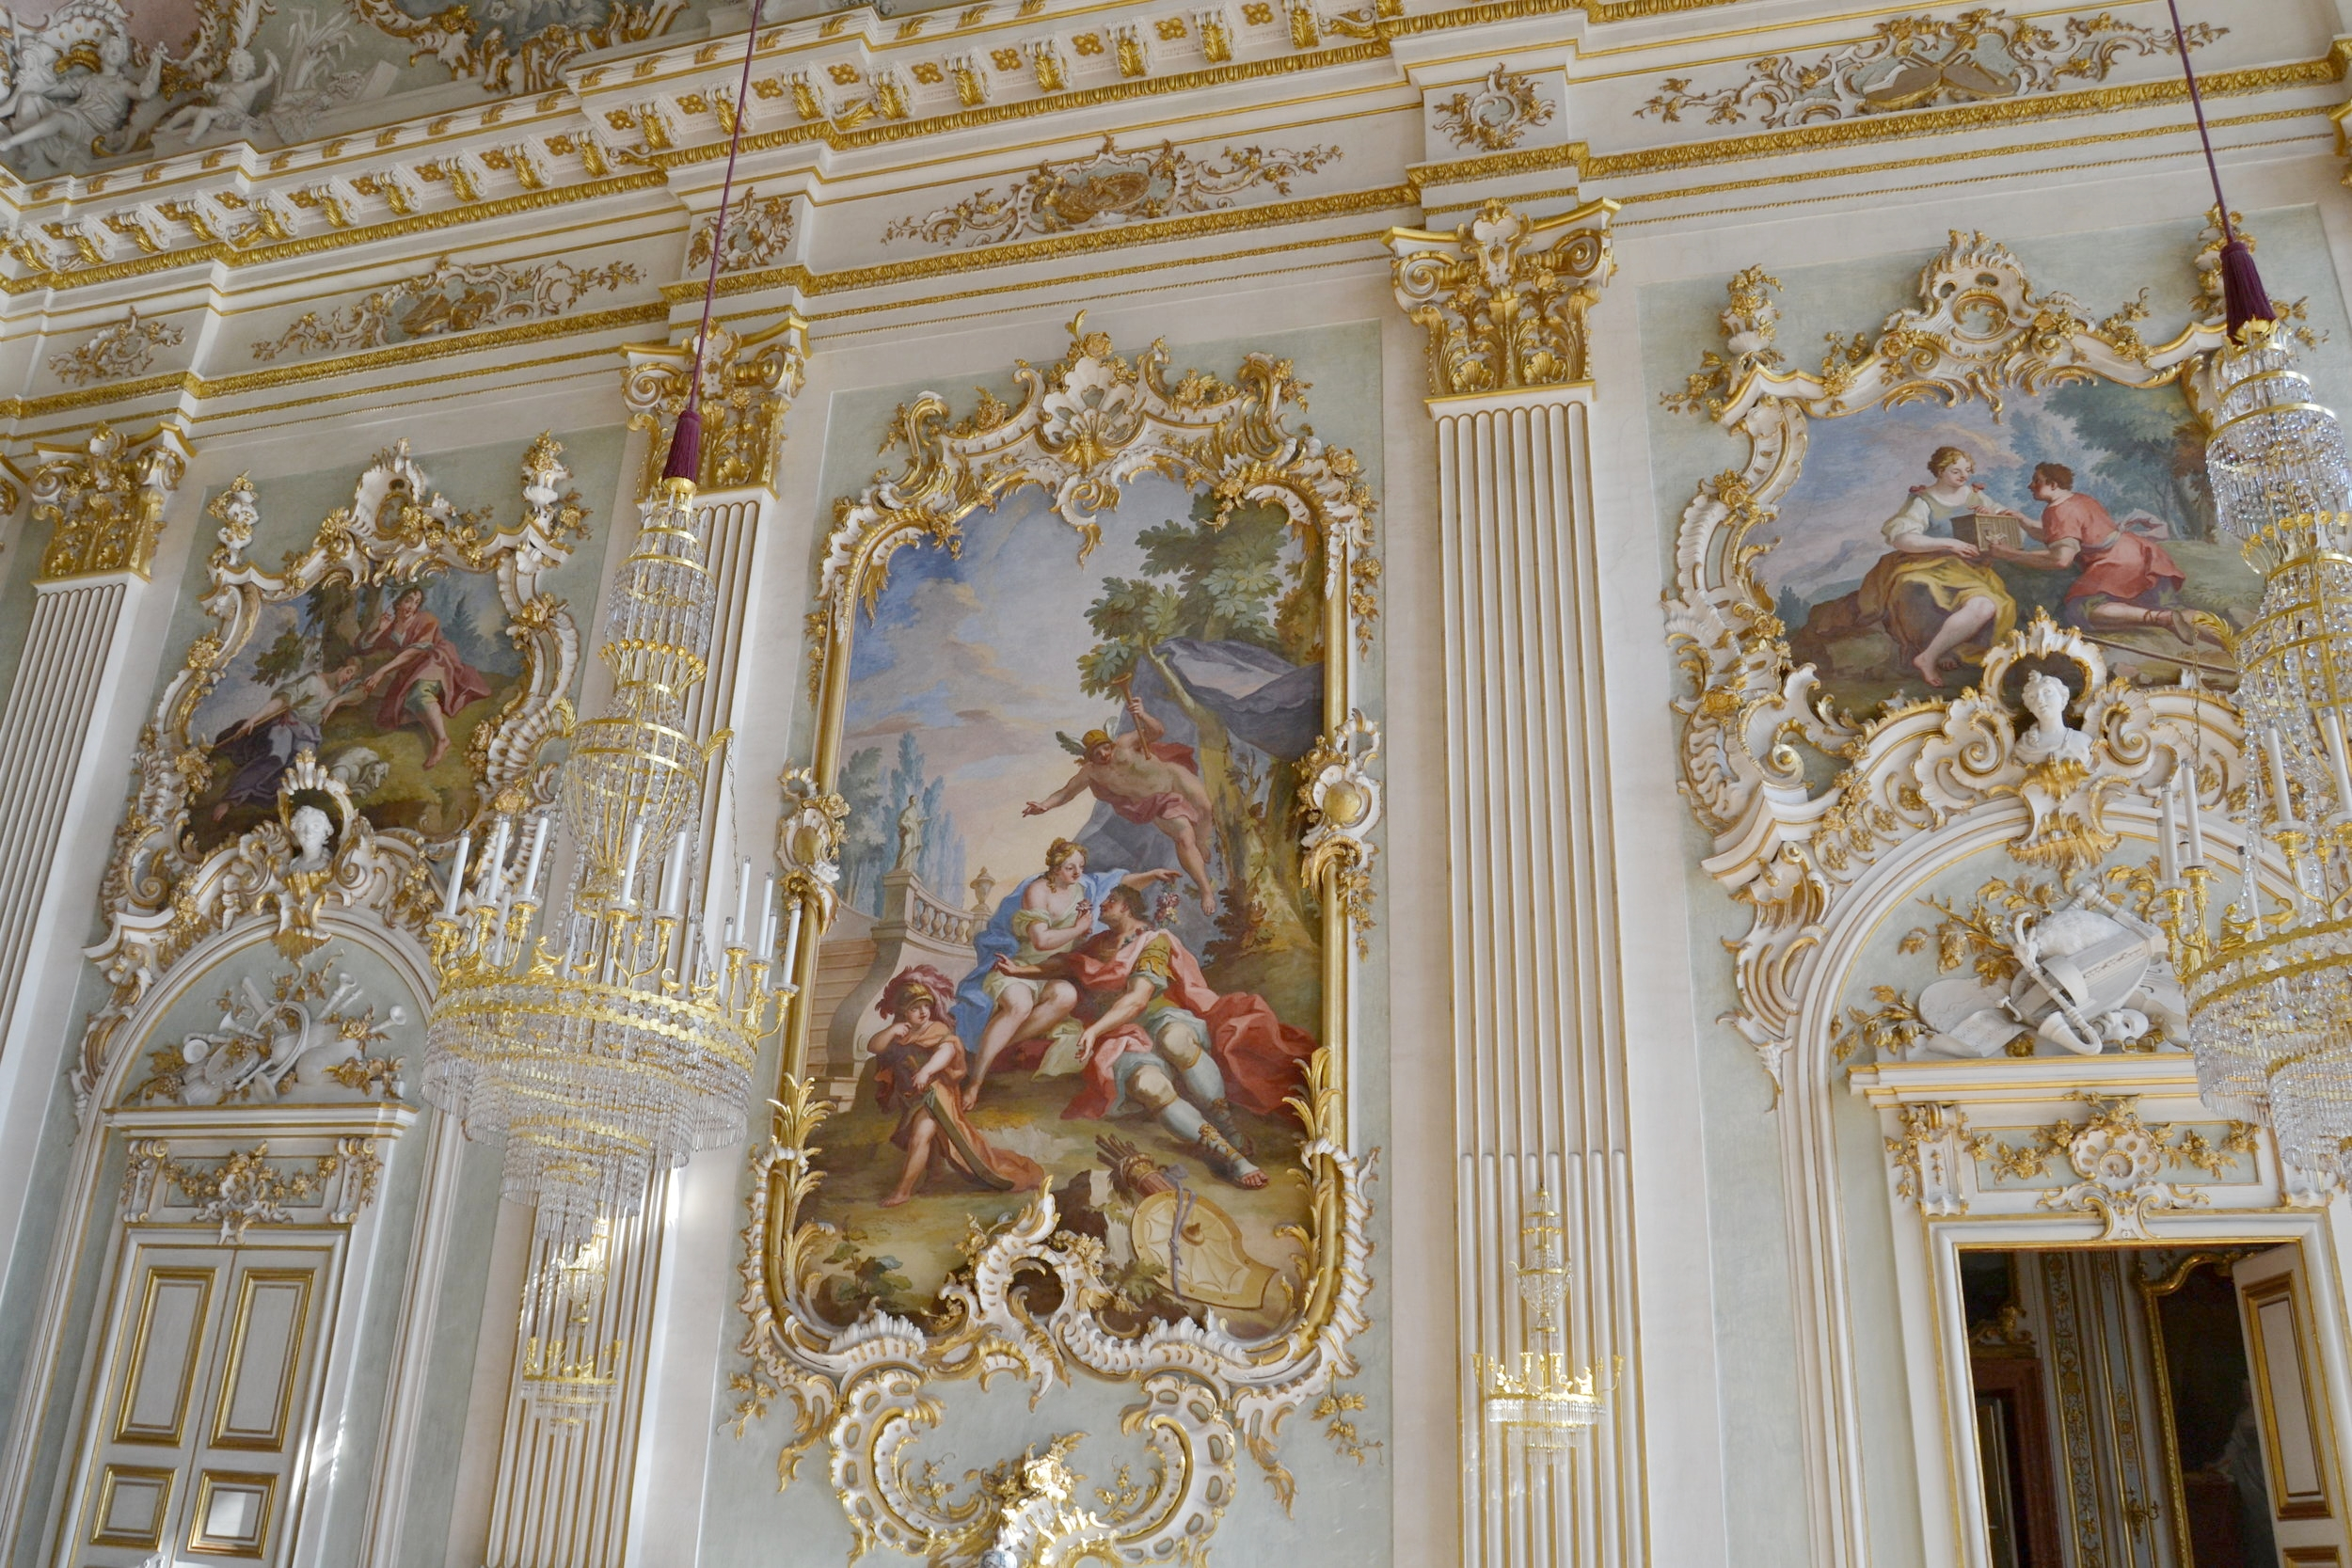 Paintings in the Great Hall of Nymphenburg Palace